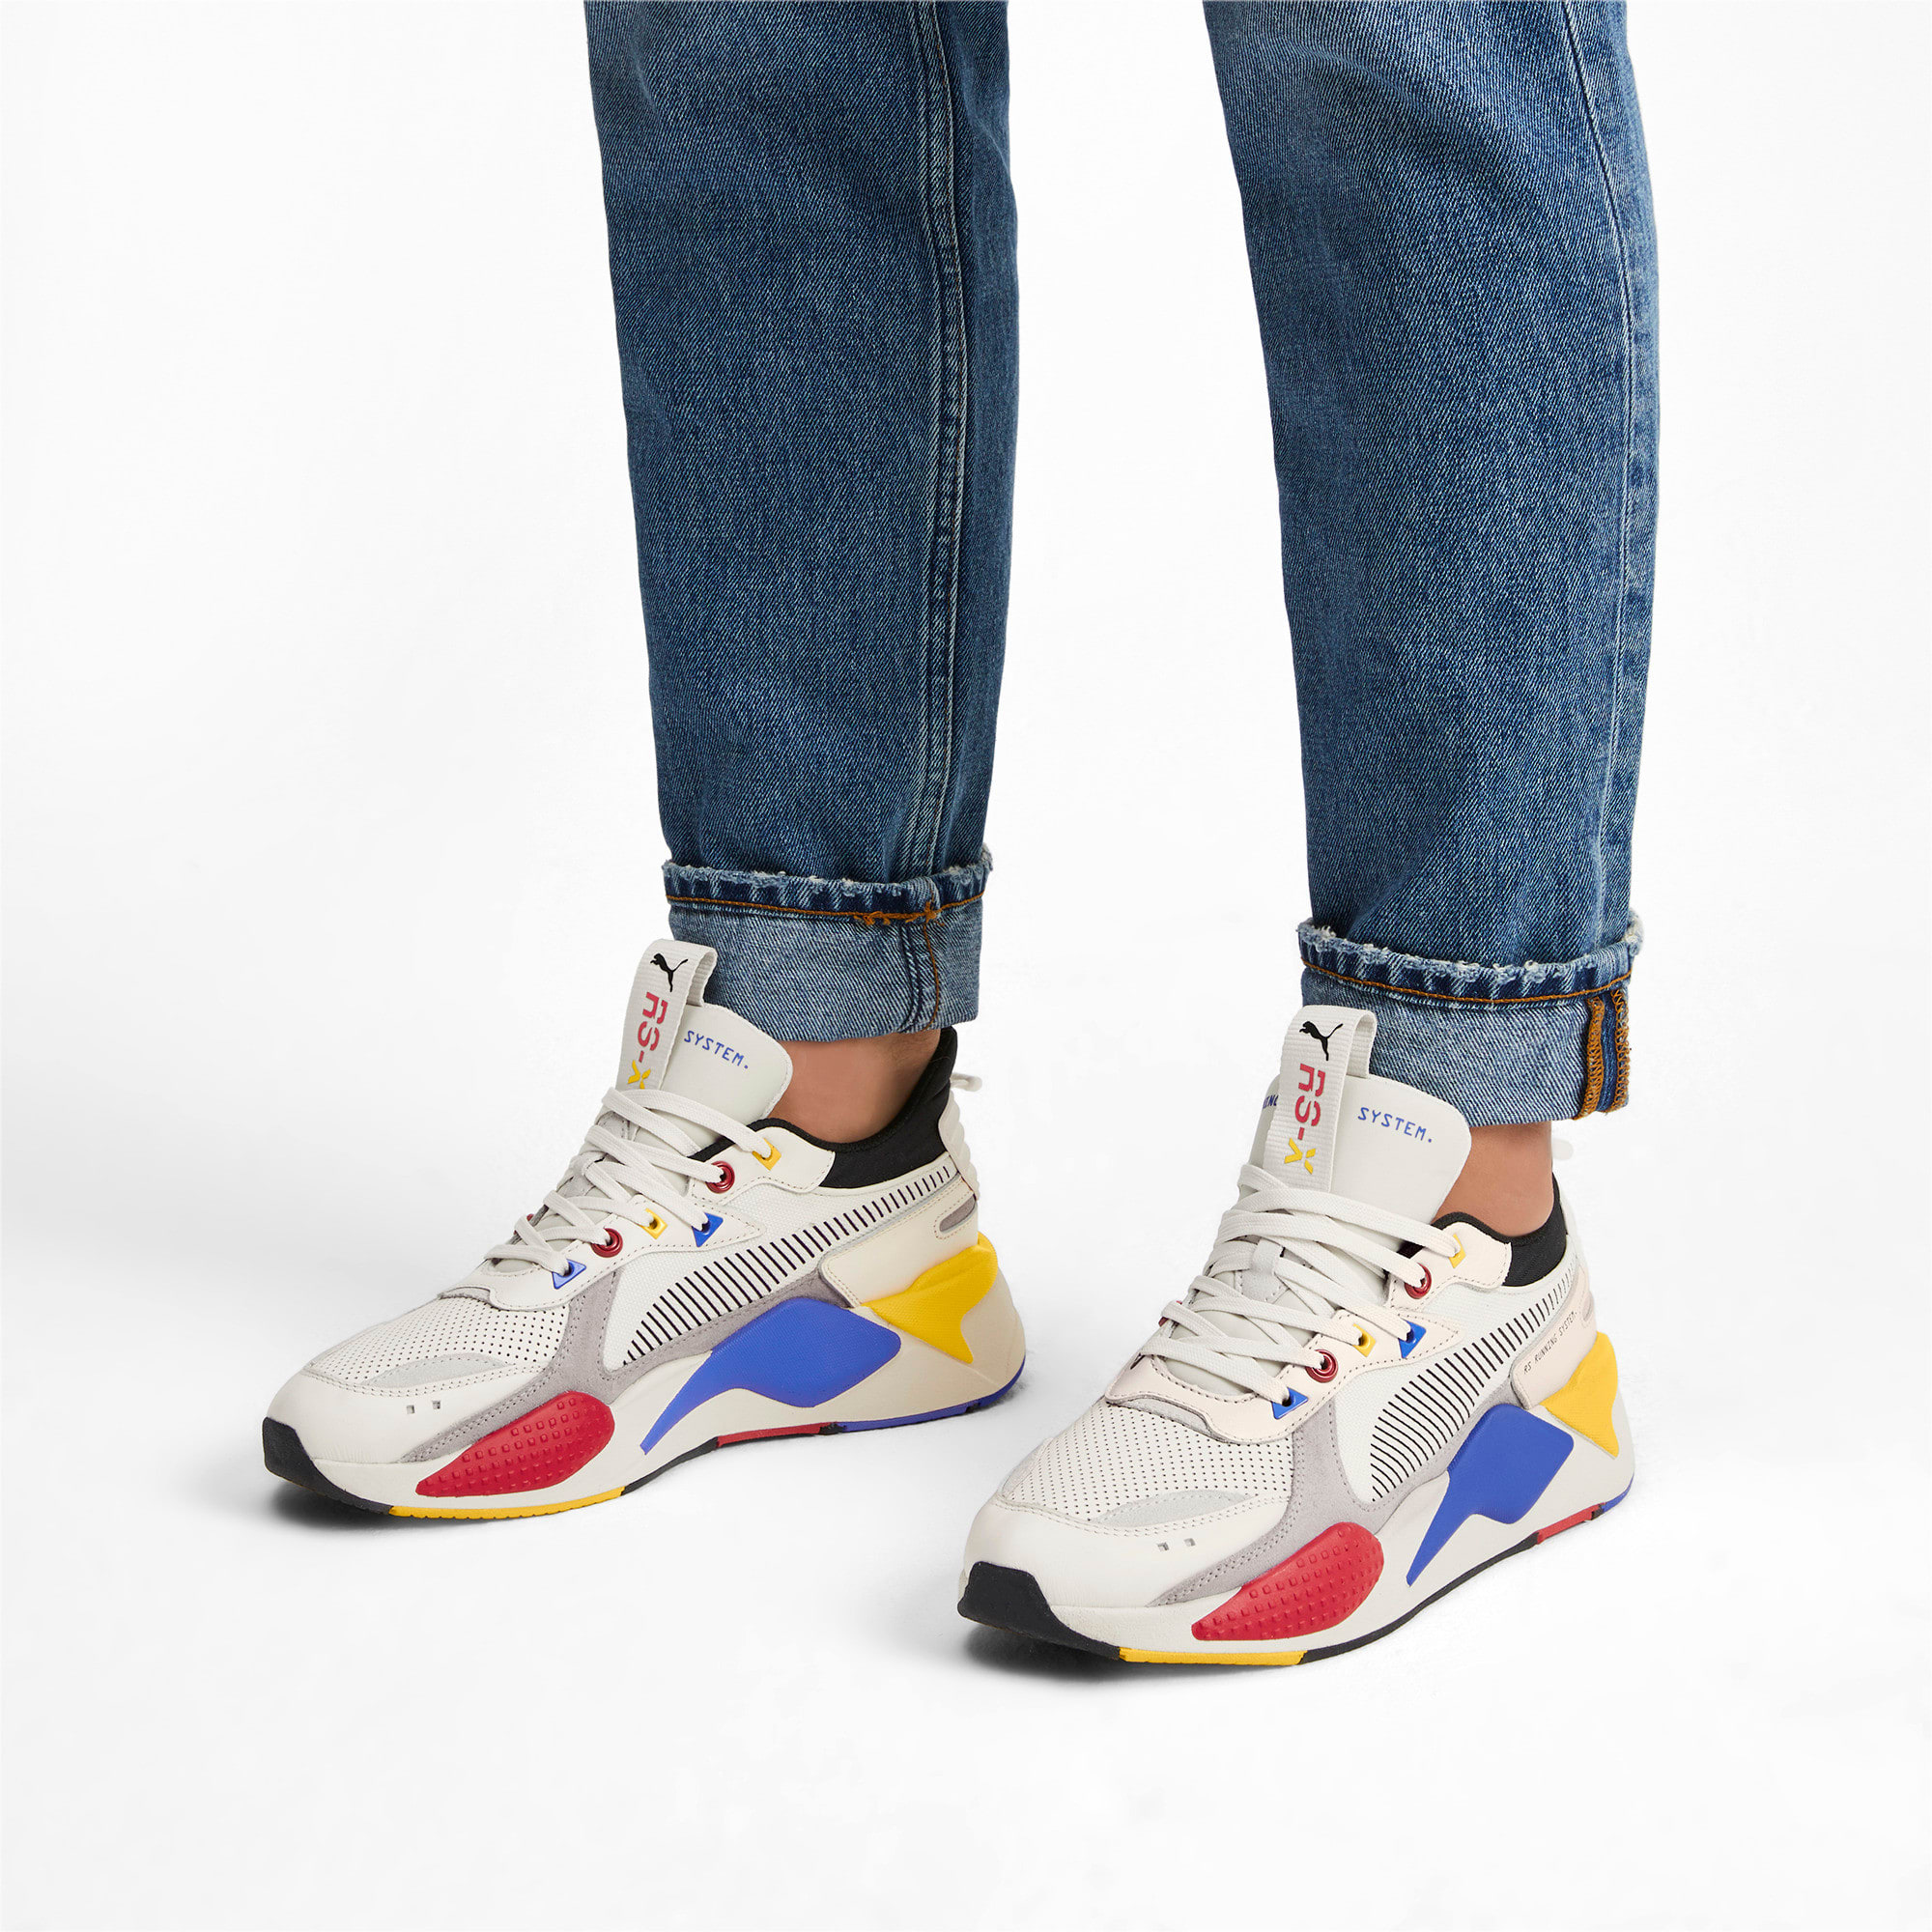 RS-X Colour Theory Trainers, Whisper White-Puma Black, large